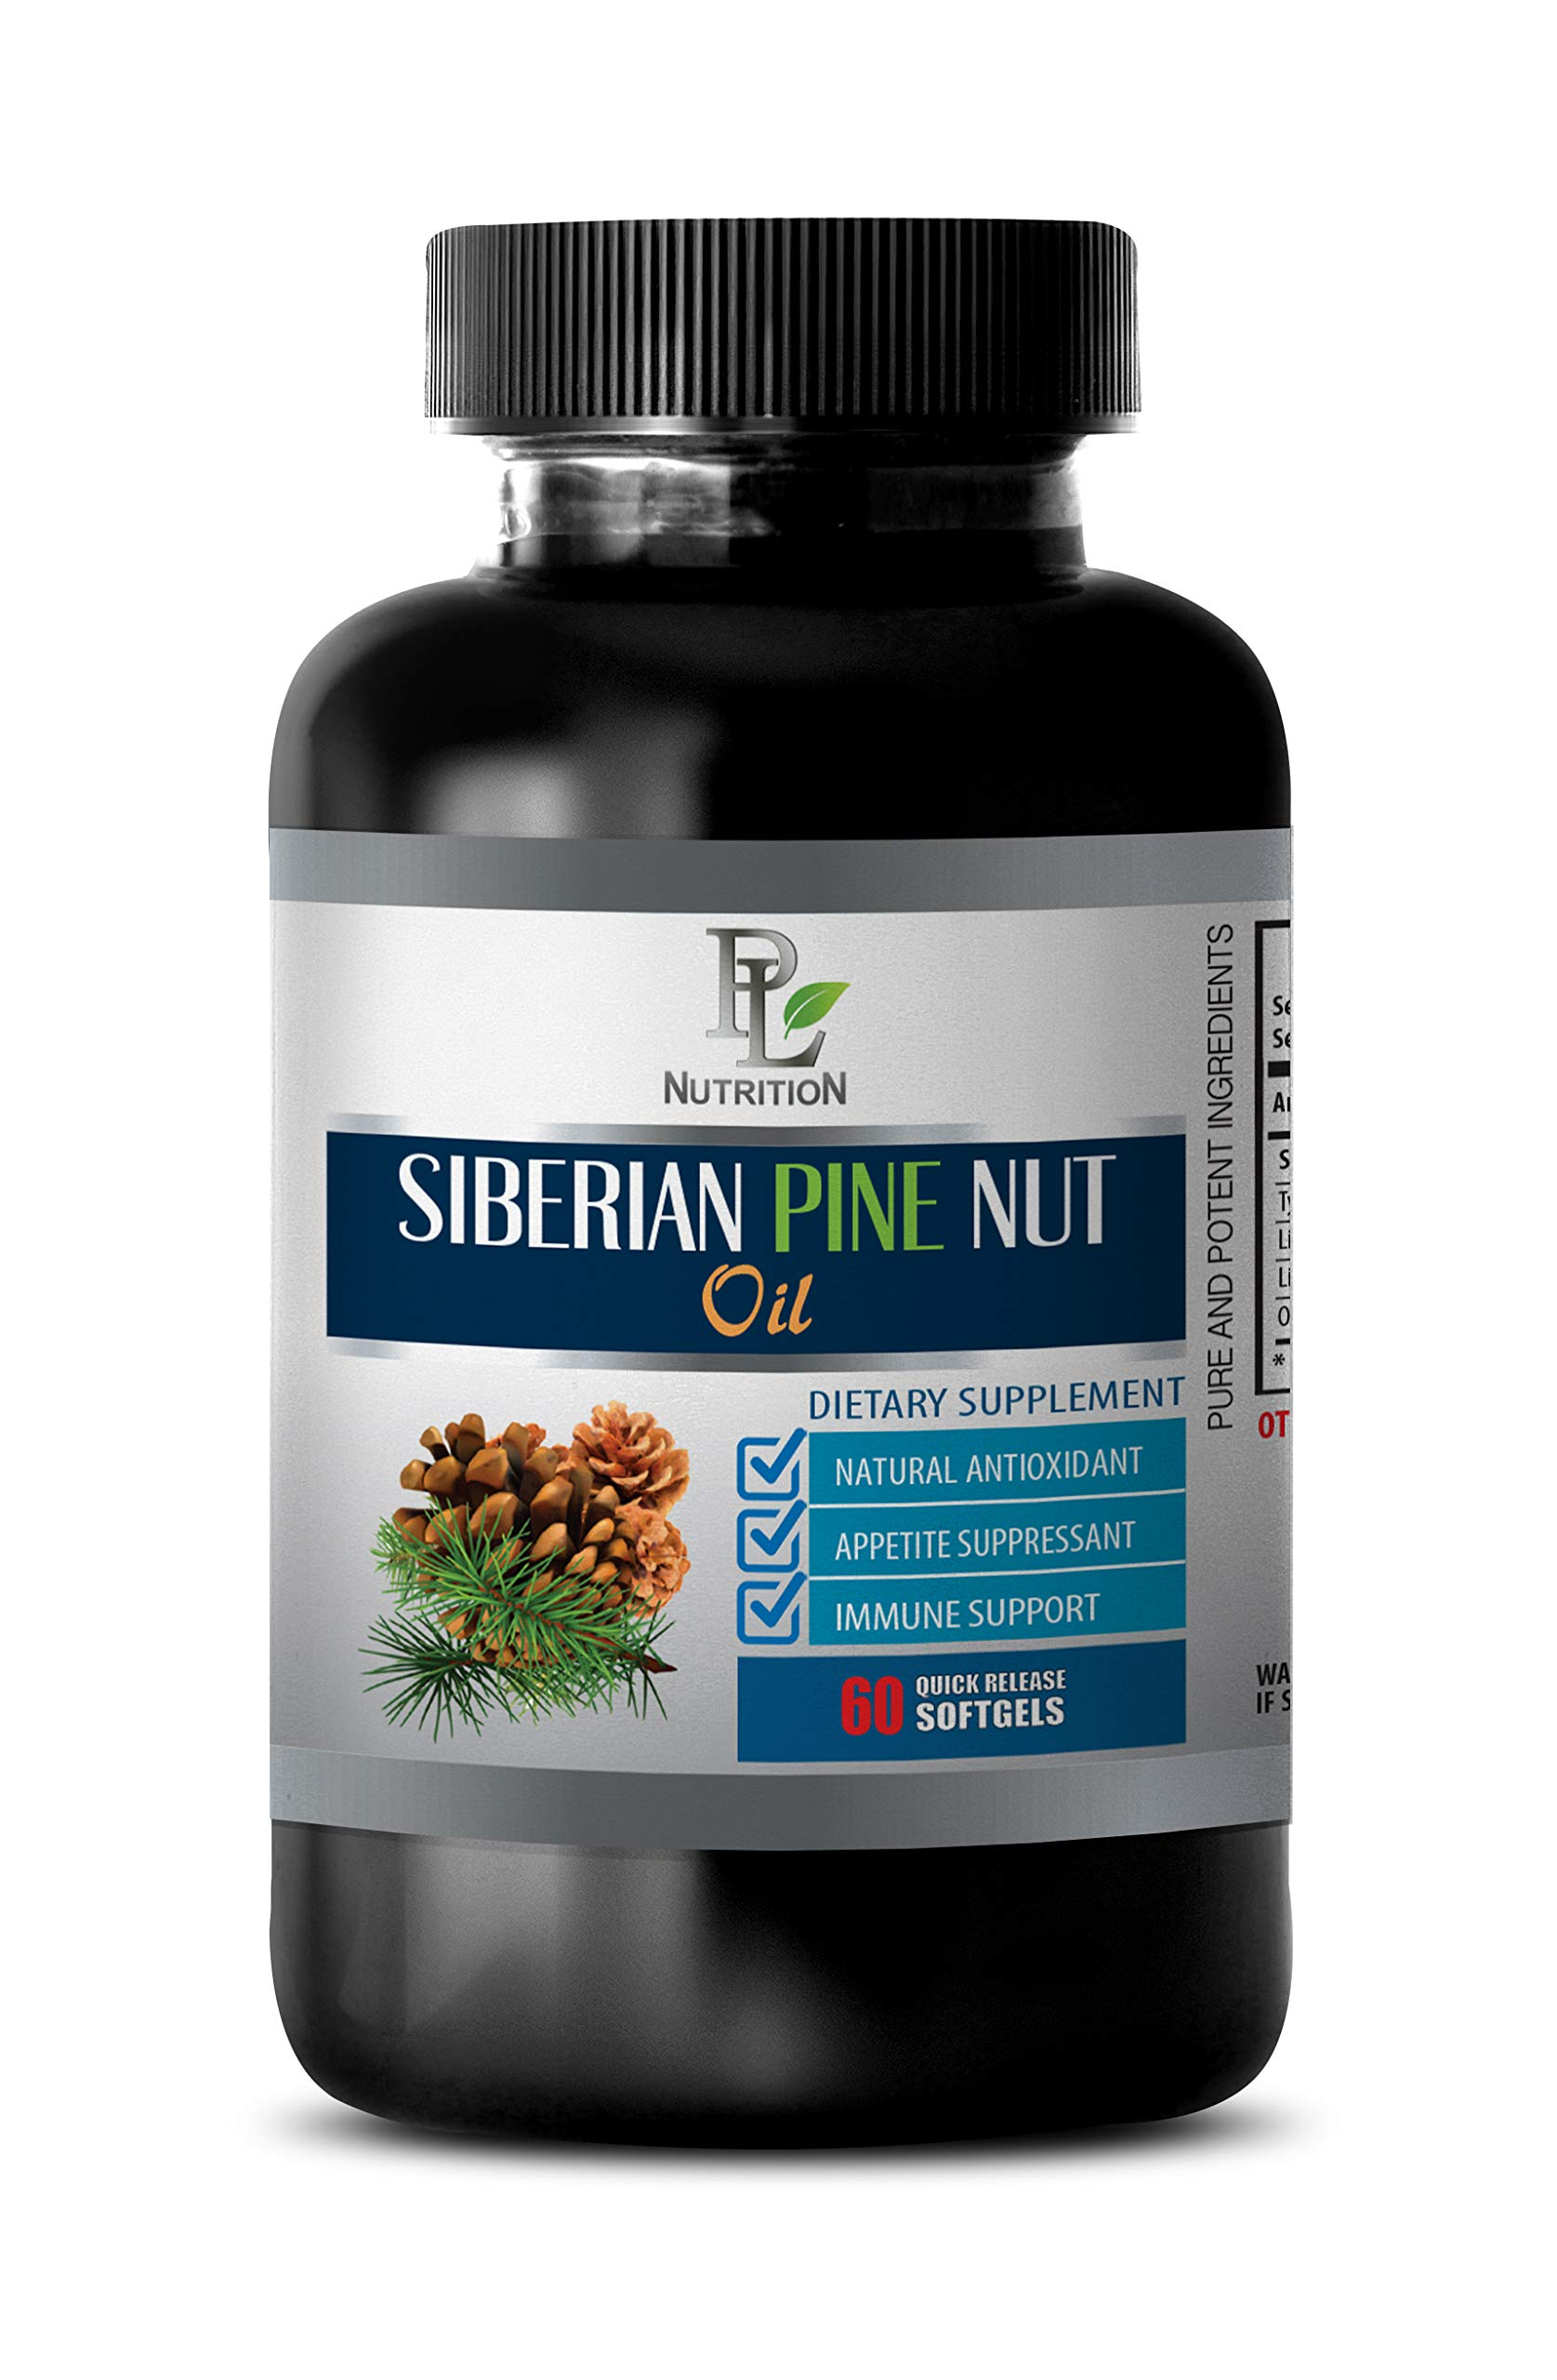 Immunity aid Essential Oil - Siberian Pine NUT Oil - Dietary Supplement - Energy Supplements for Women - 1 Bottle 60 Softgels by PL NUTRITION